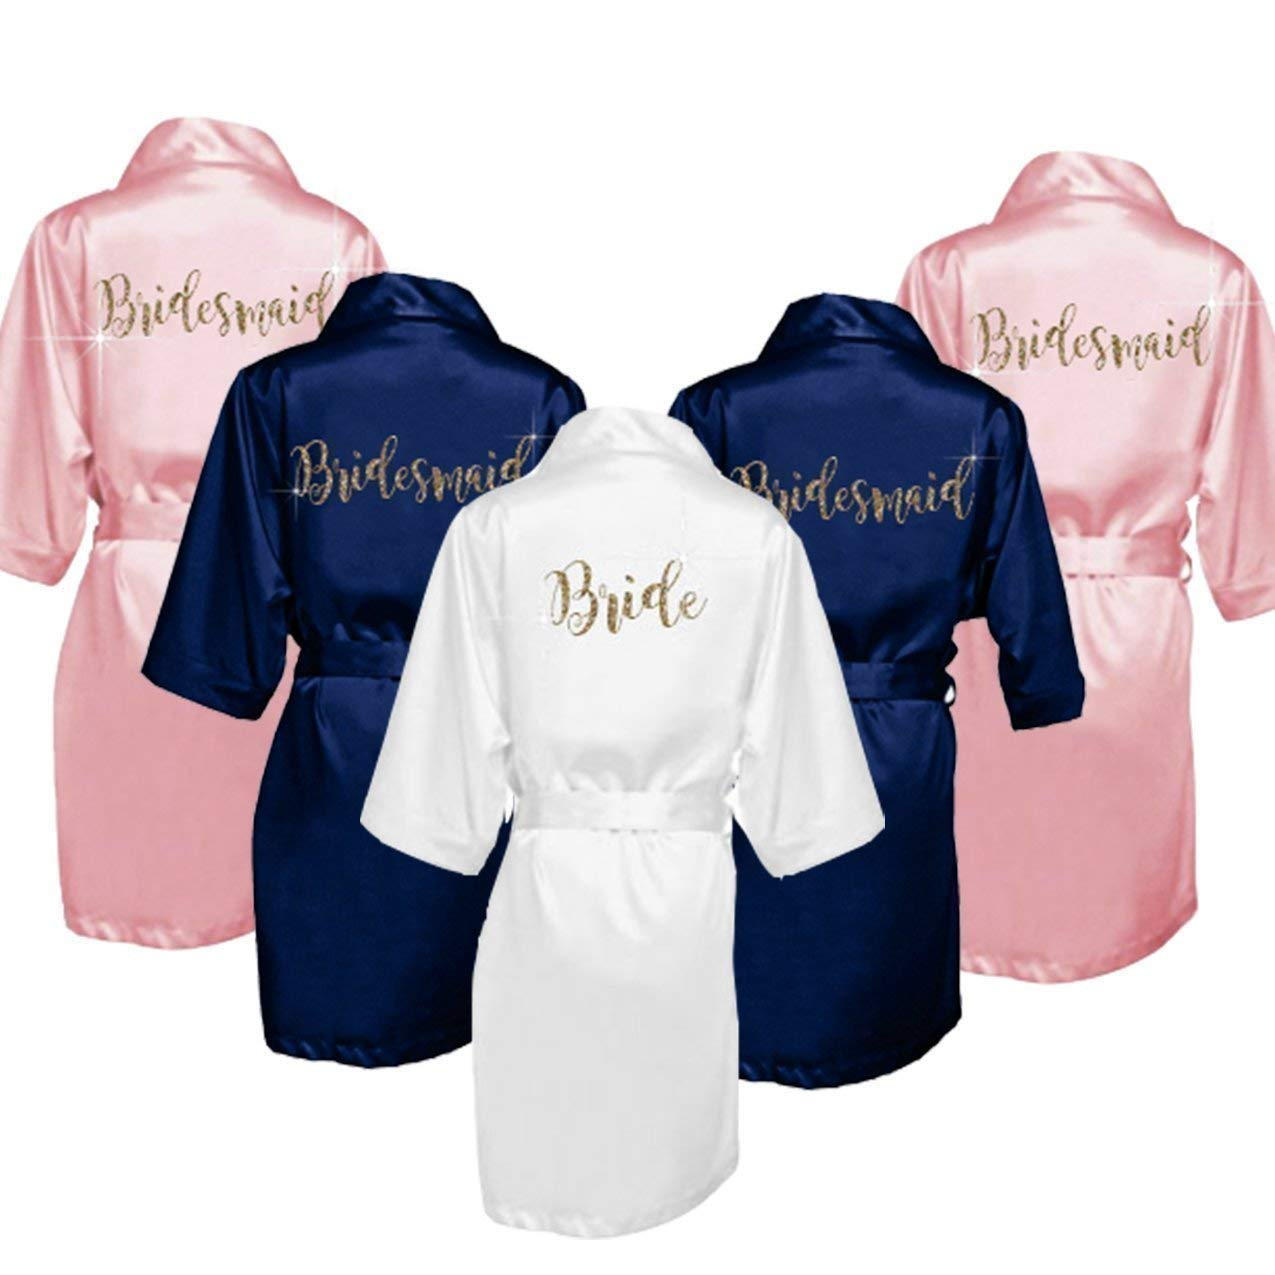 Personalized Bridesmaid Satin Kimono Robes Gift for Bridal Party